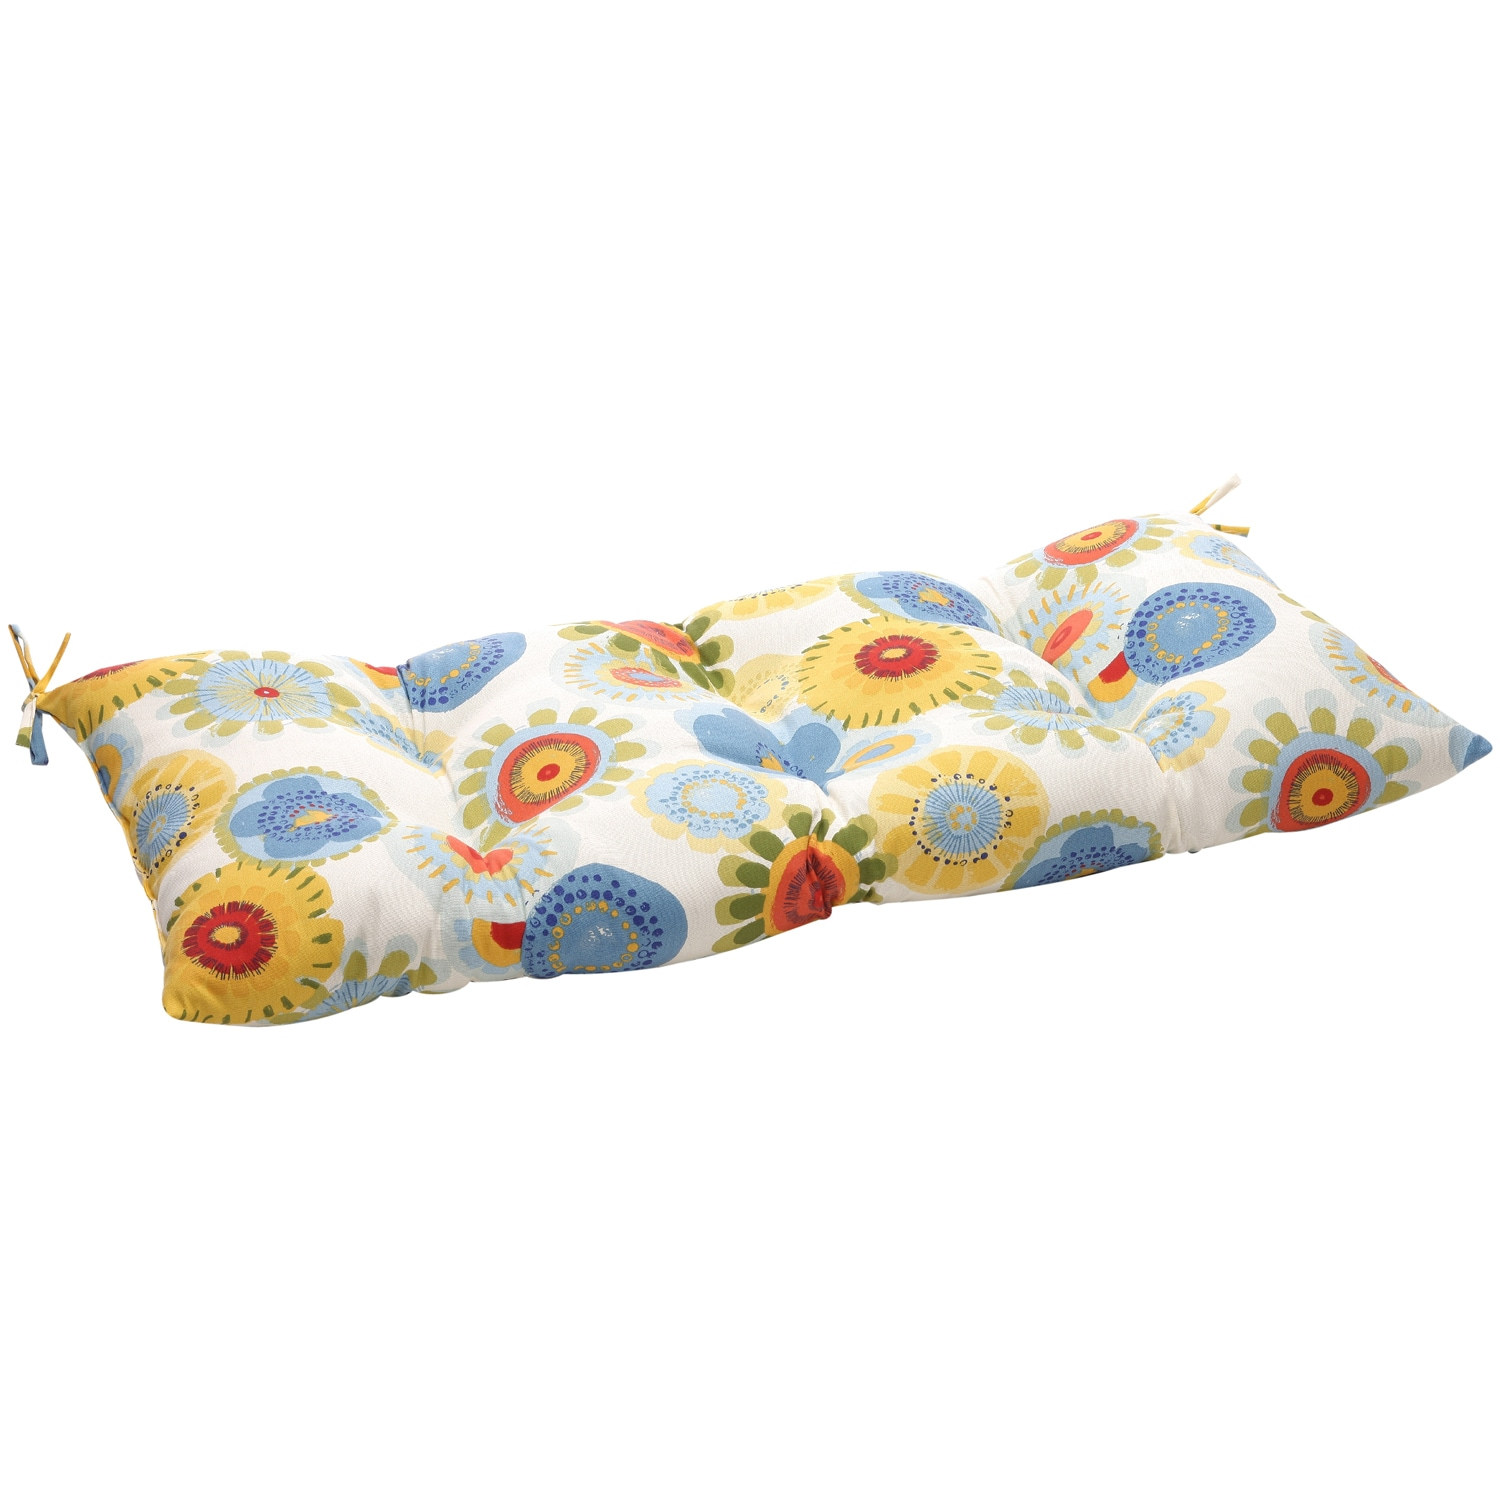 Pillow Perfect Multicolored Floral Polyester Outdoor Tufted Loveseat Cushion at Sears.com